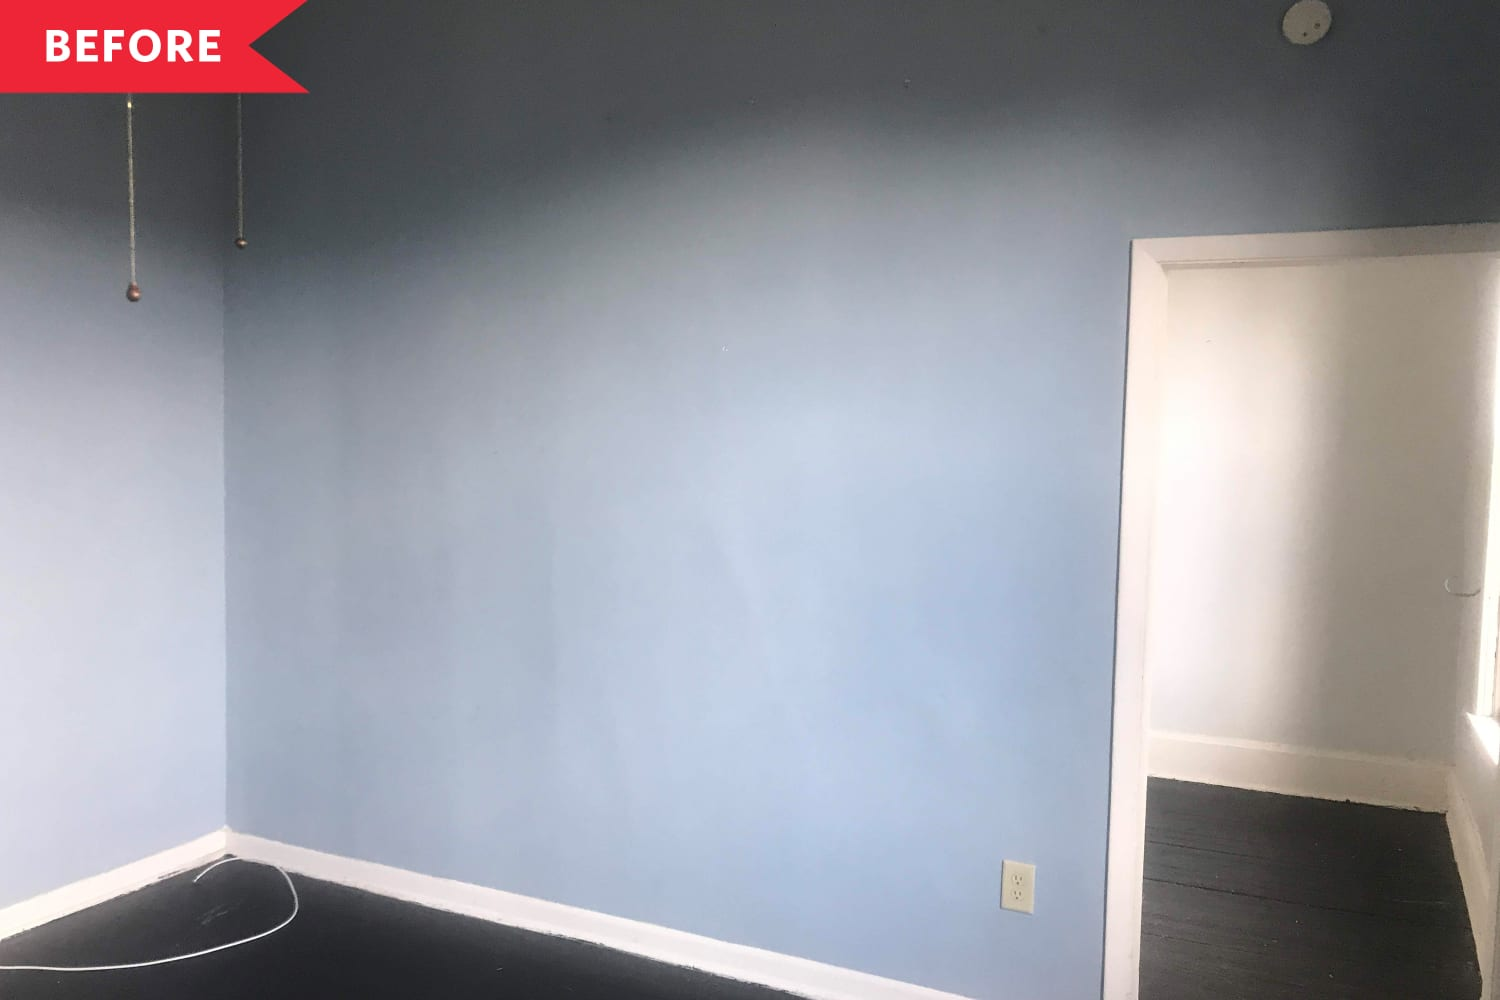 Before and After: A DIYer Transforms a Blank Living Room Wall into the Ultimate Focal Point for Less Than $200